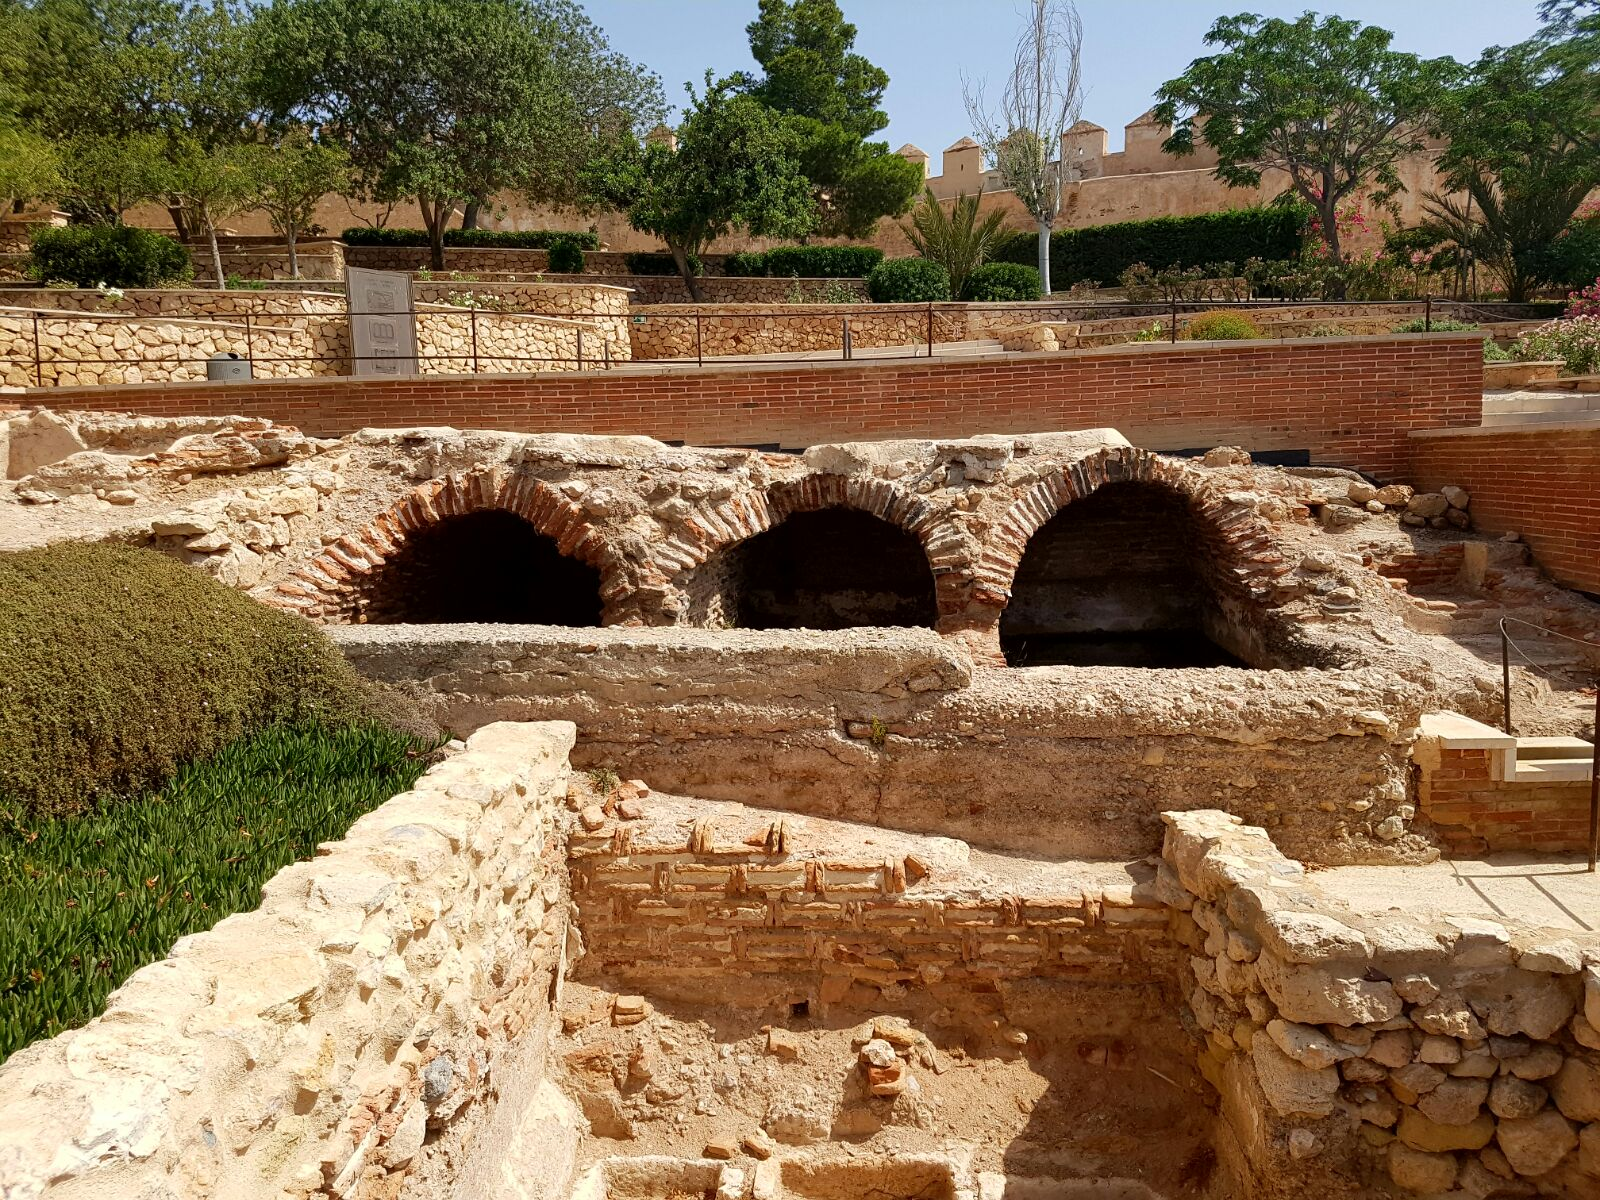 Image of Guided Tour of the Alcazaba